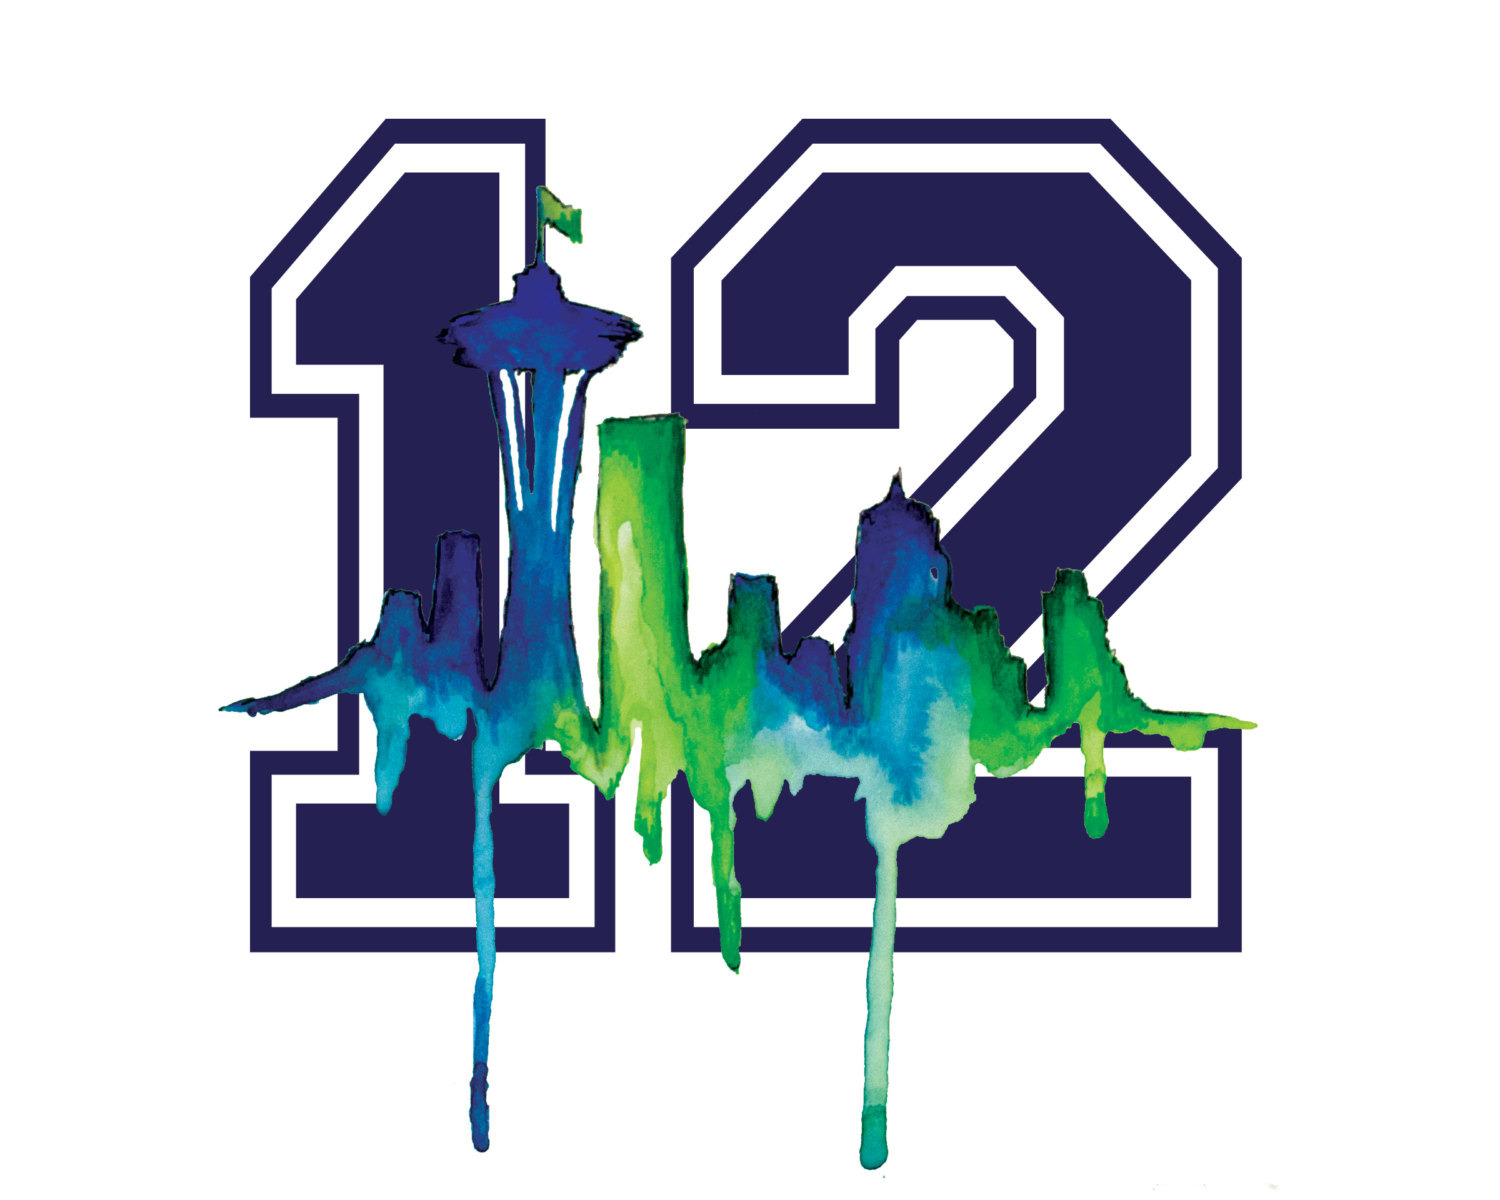 12th man, Seahawks and Seattle .